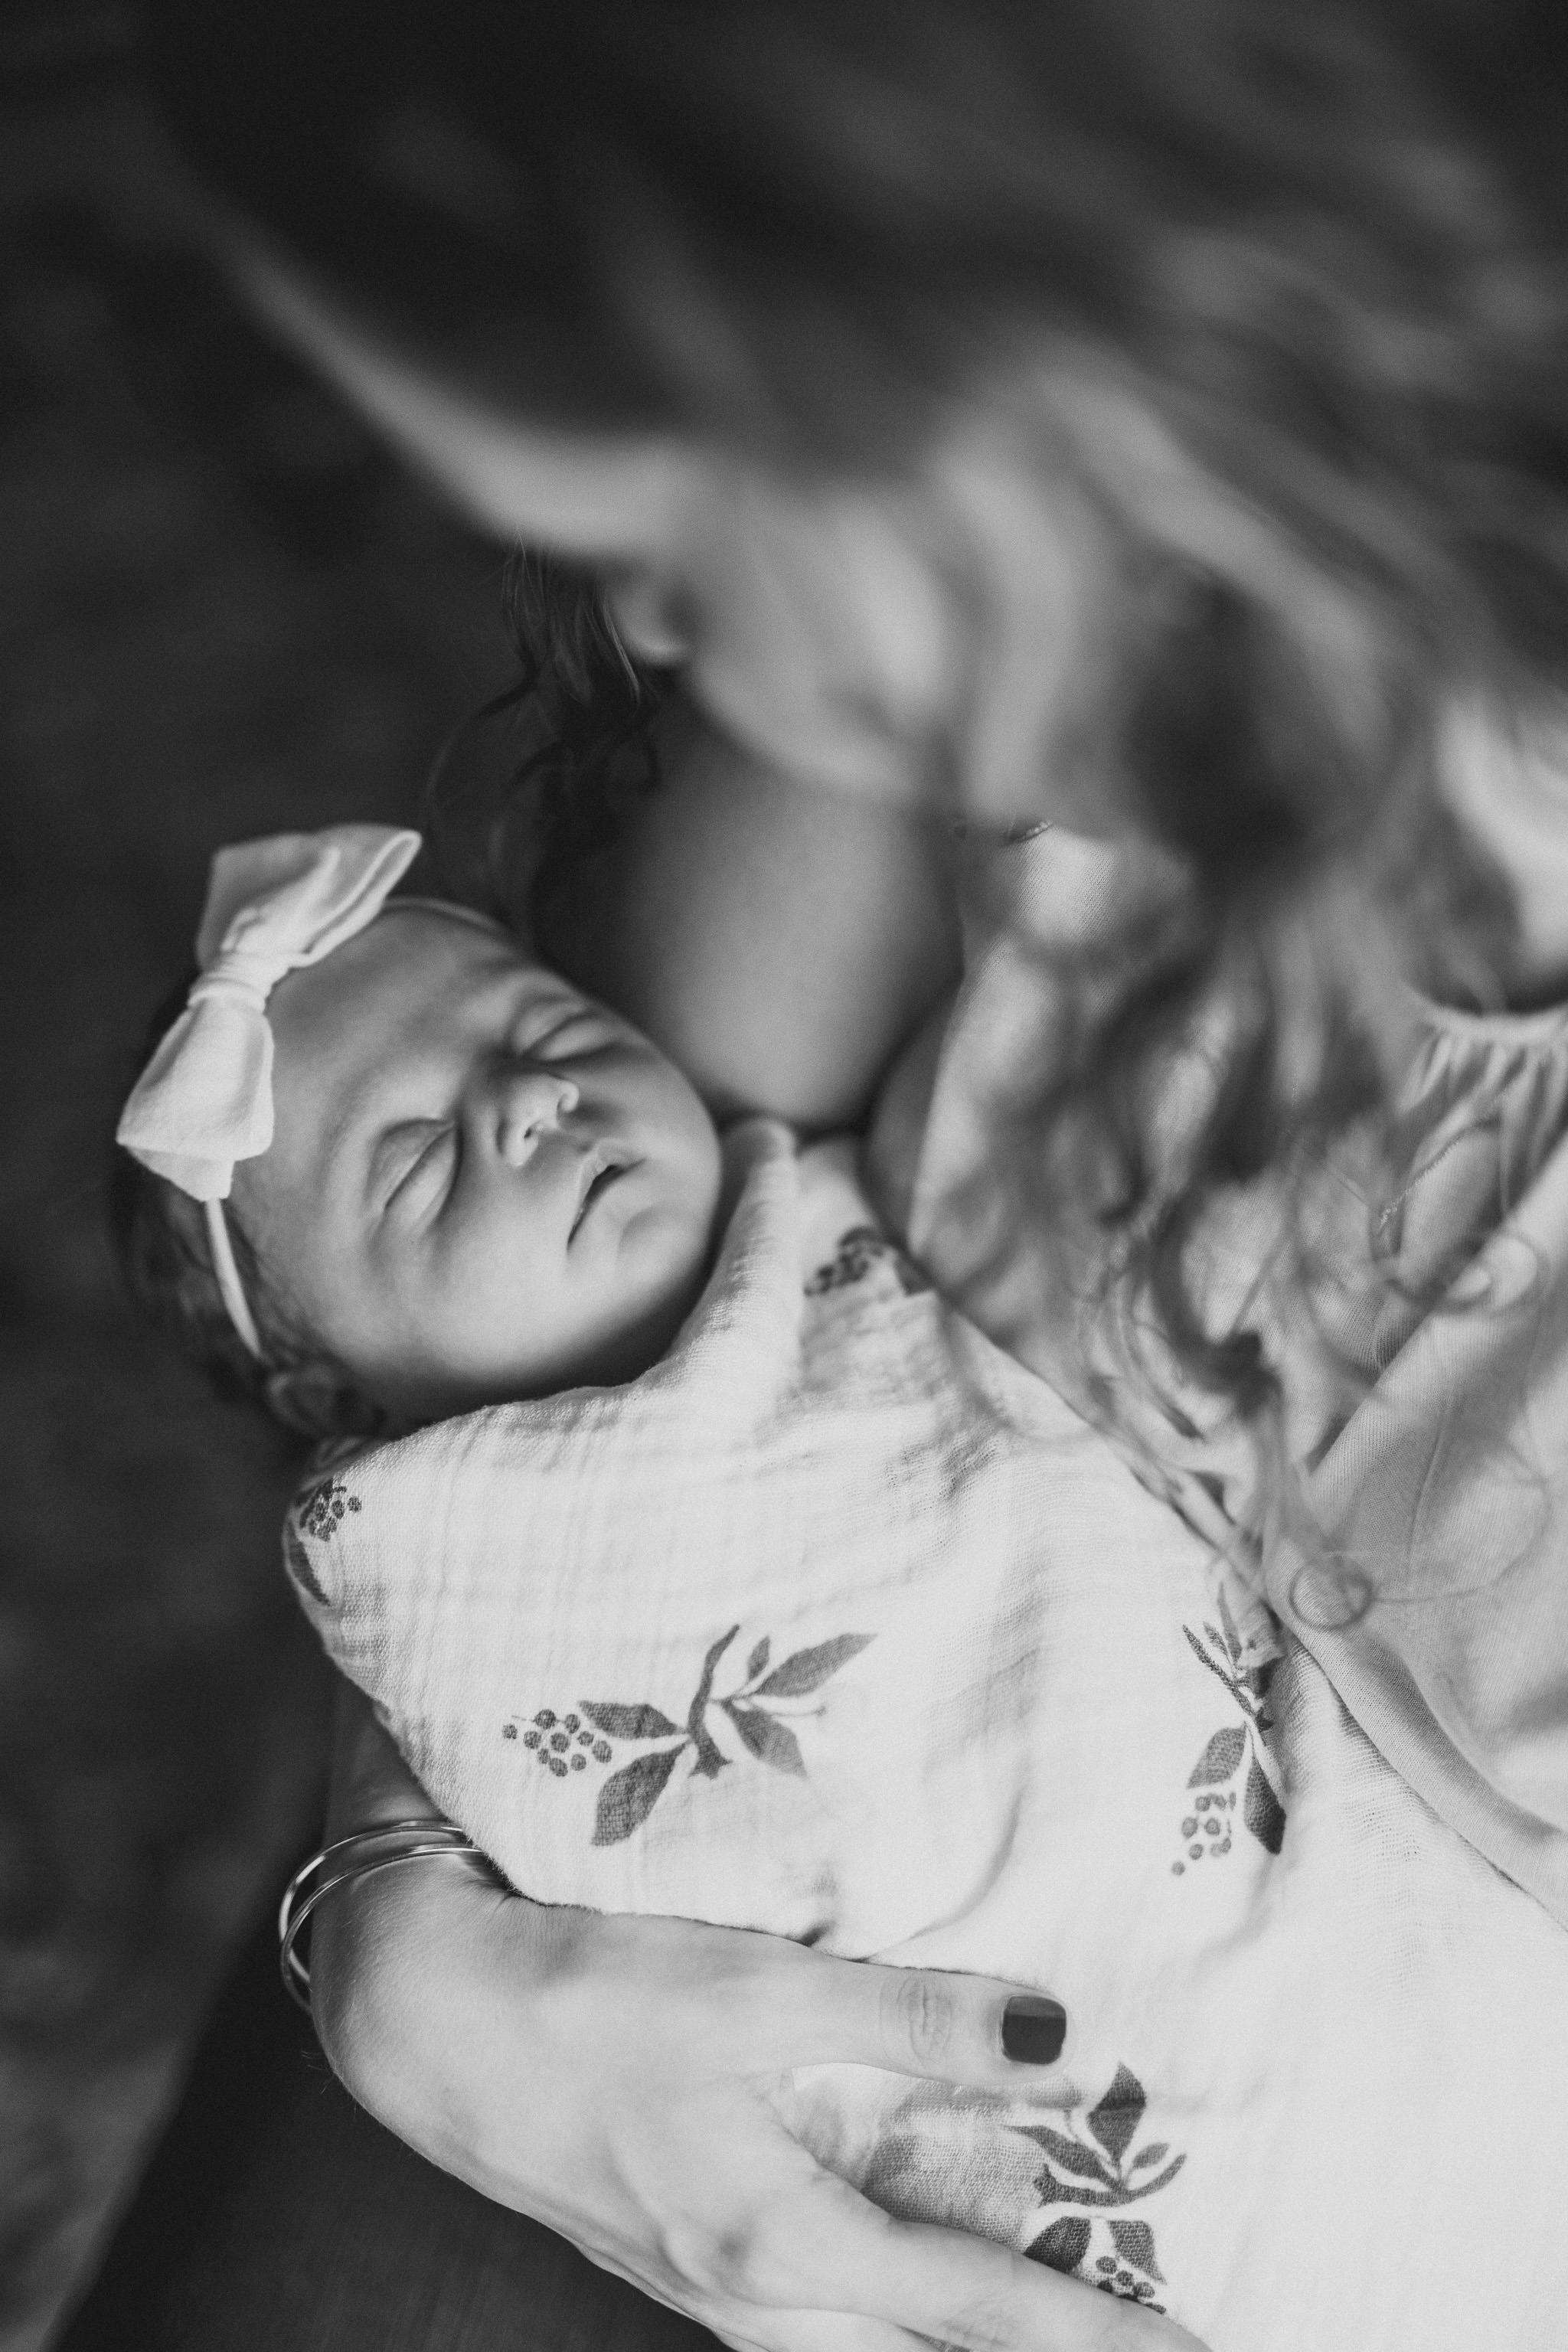 mom looking at newborn eyes closed held in arms in home newborn session nashville tennessee family photography photographer thomas wywrot tn